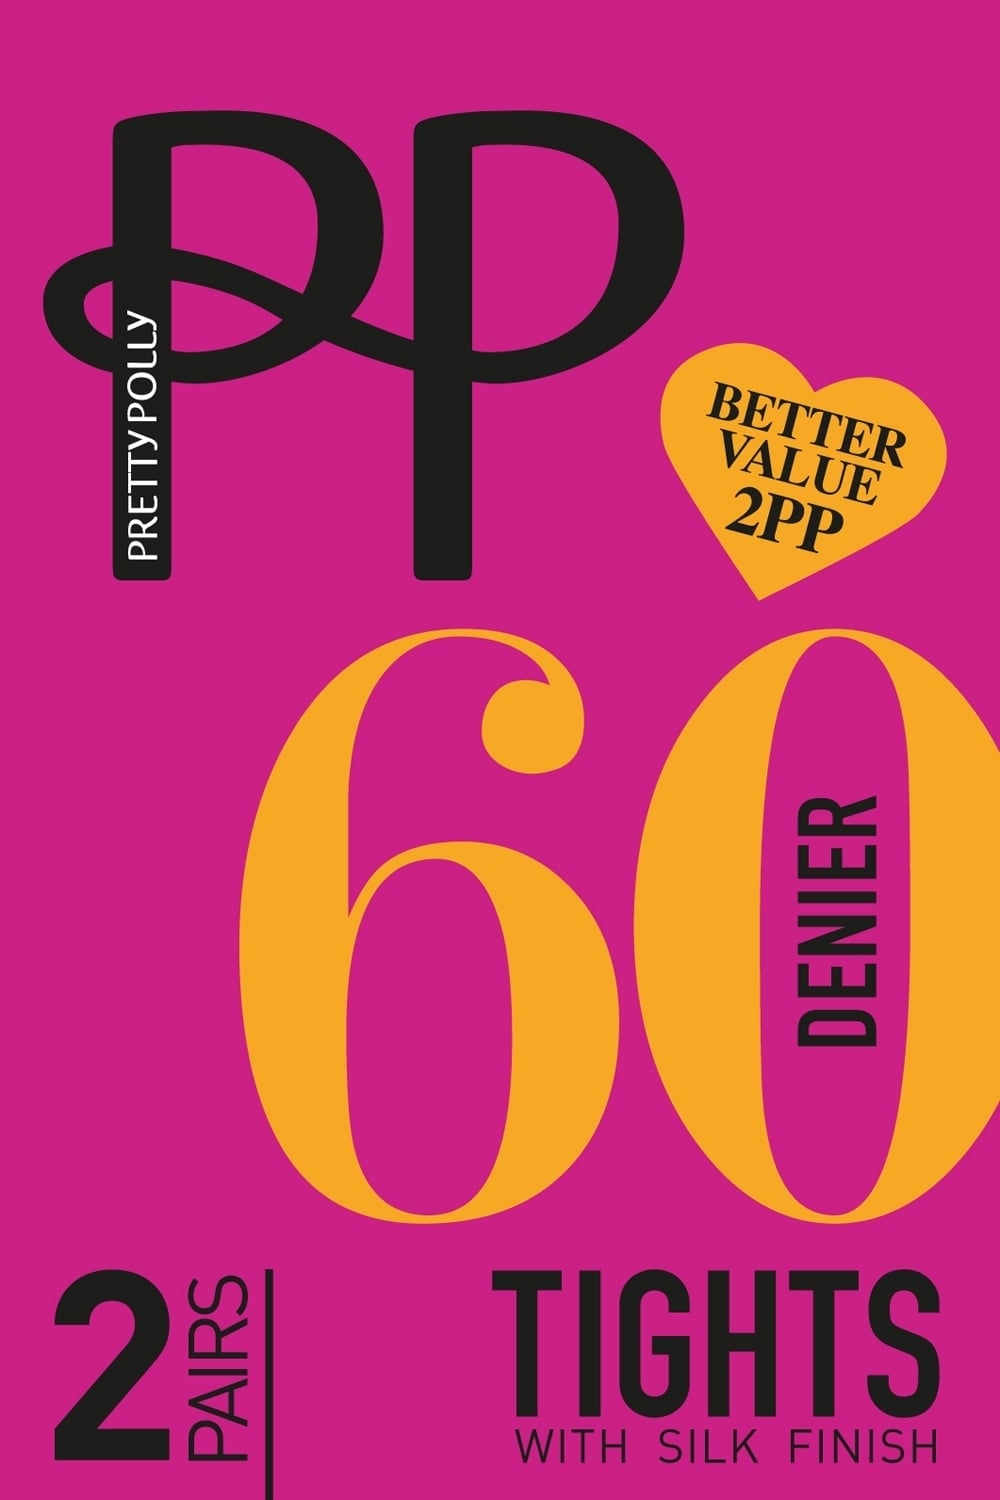 affcdb8be Pretty Polly 60 Denier Black Opaque Tights with Silk Finish 2 Pr Pack